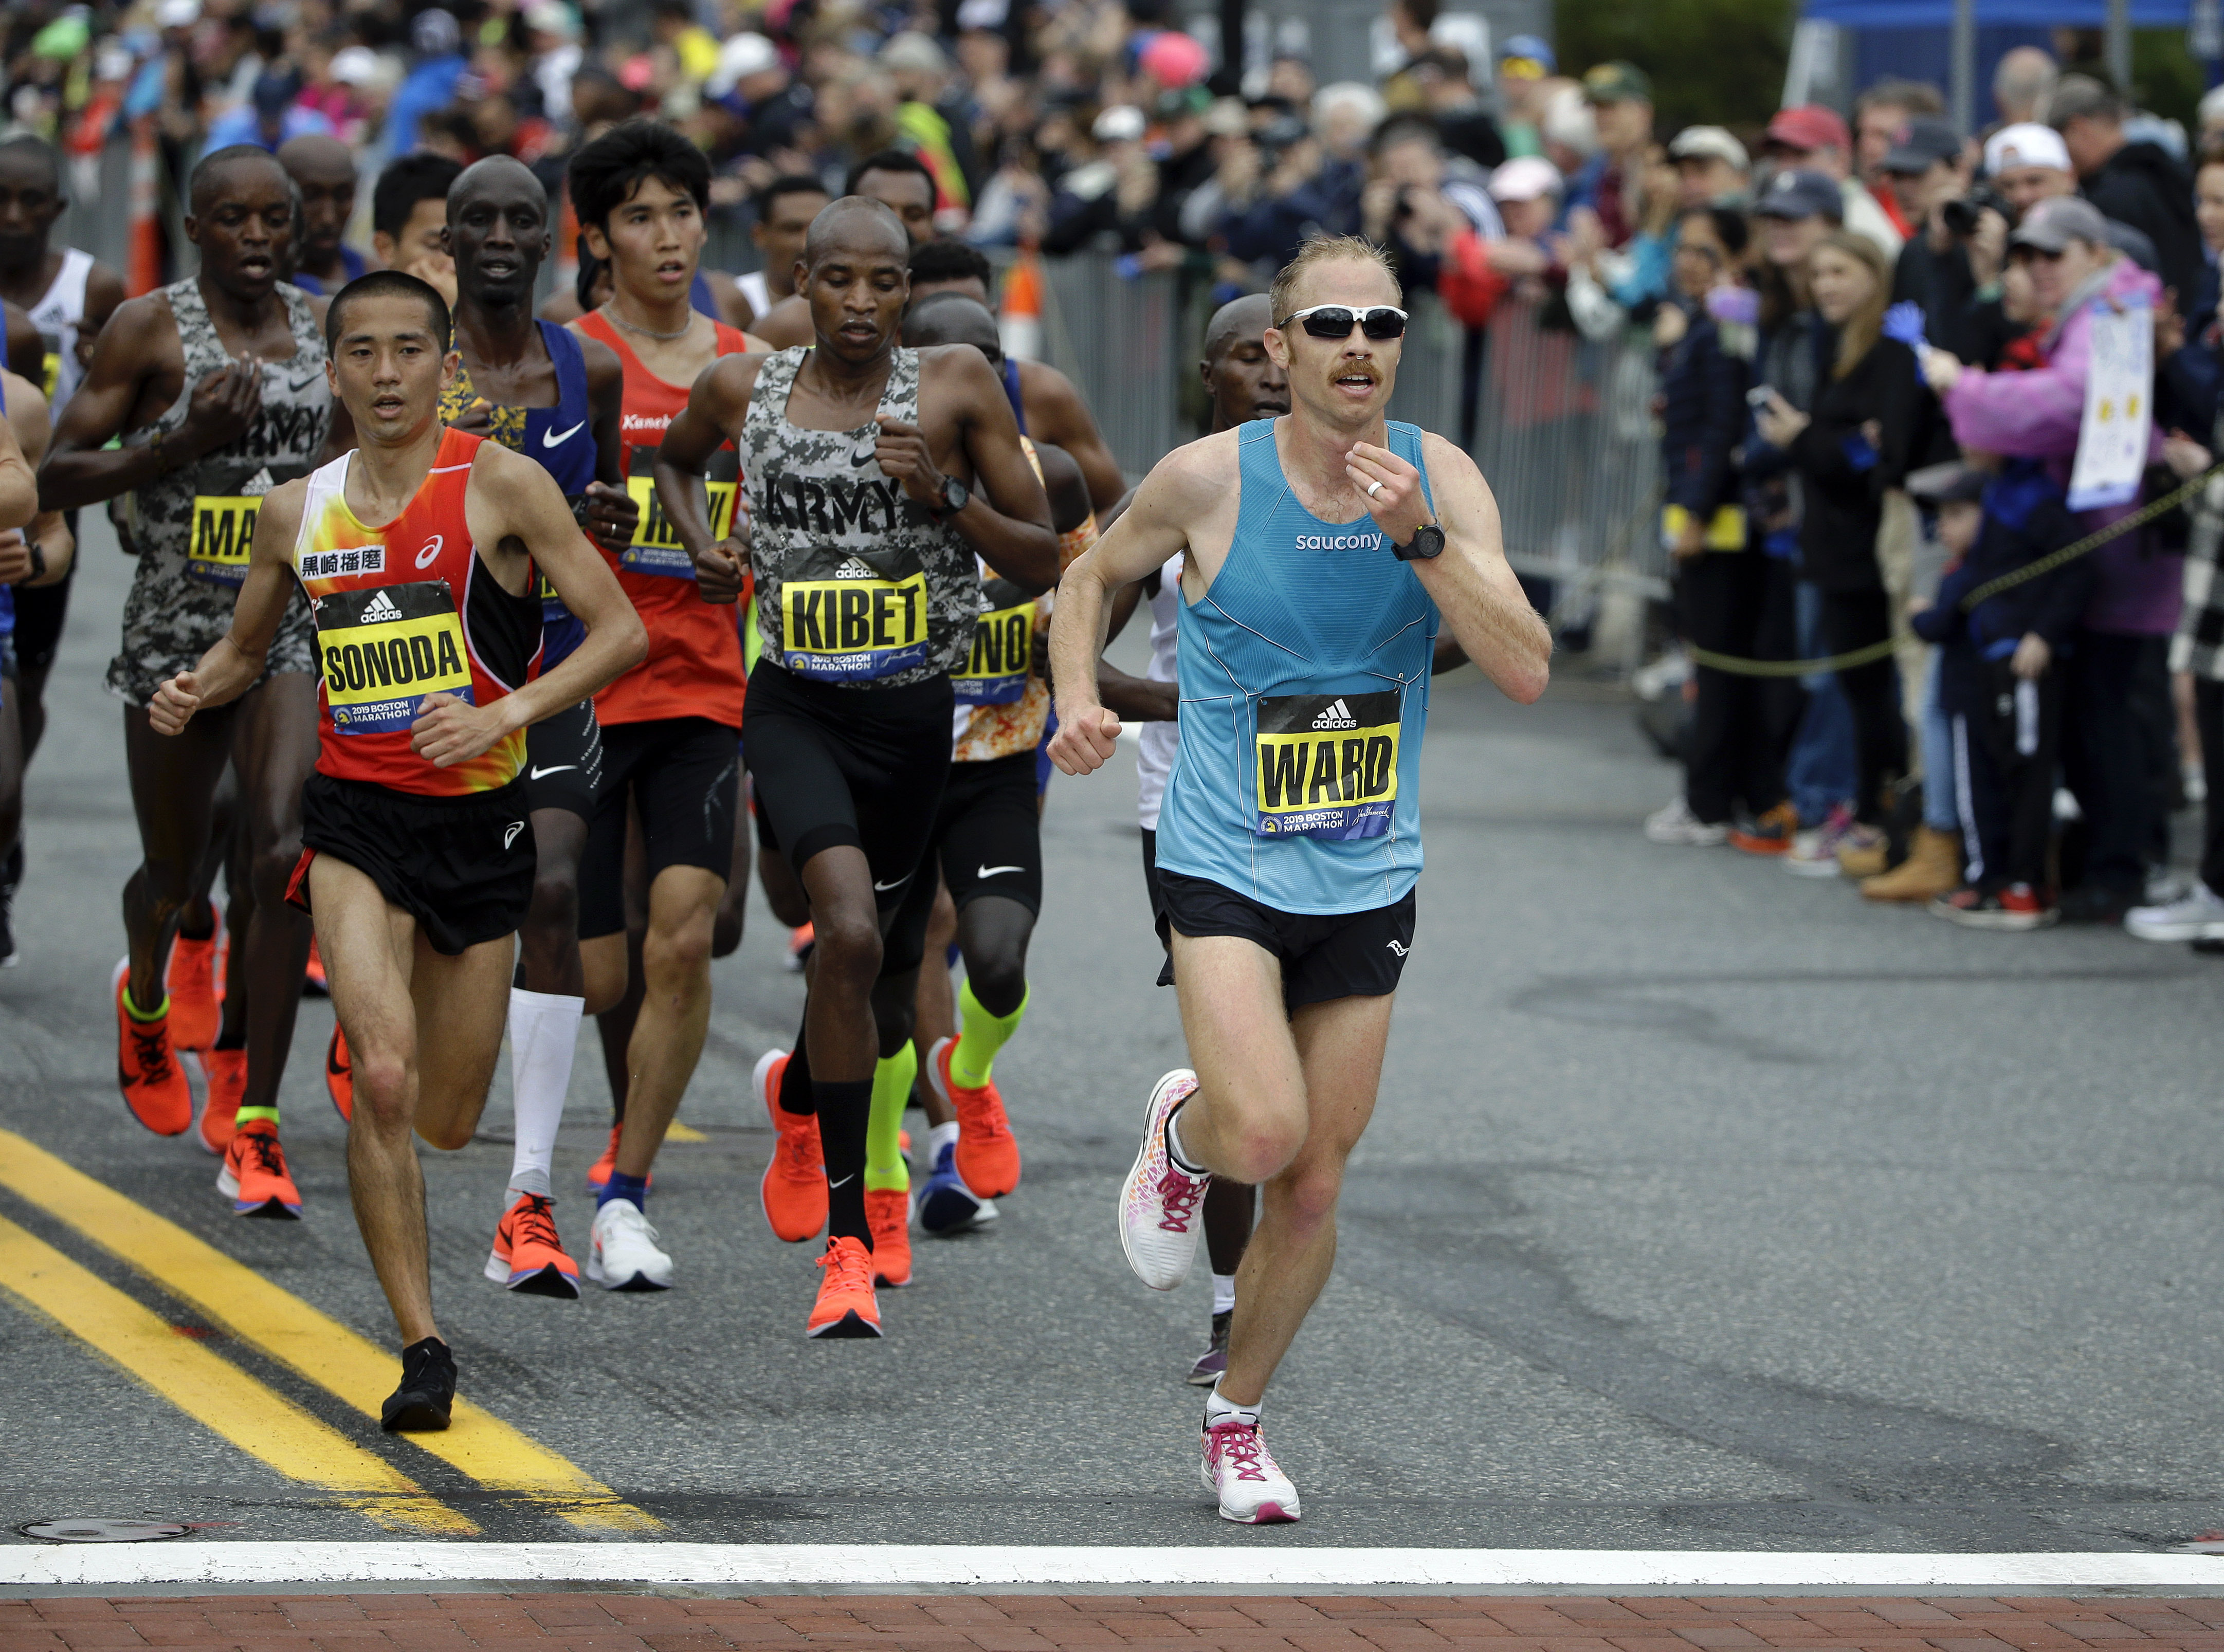 Jared Ward, of Mapleton, Utah, right, leads the pack ahead of Hayato Sonoda, left, of Japan, and Elkanah Kibet, center, of Fountain, Colo., as they run the course during the 123rd Boston Marathon on Monday, April 15, 2019, in Boston. (AP Photo/Steven Senne)